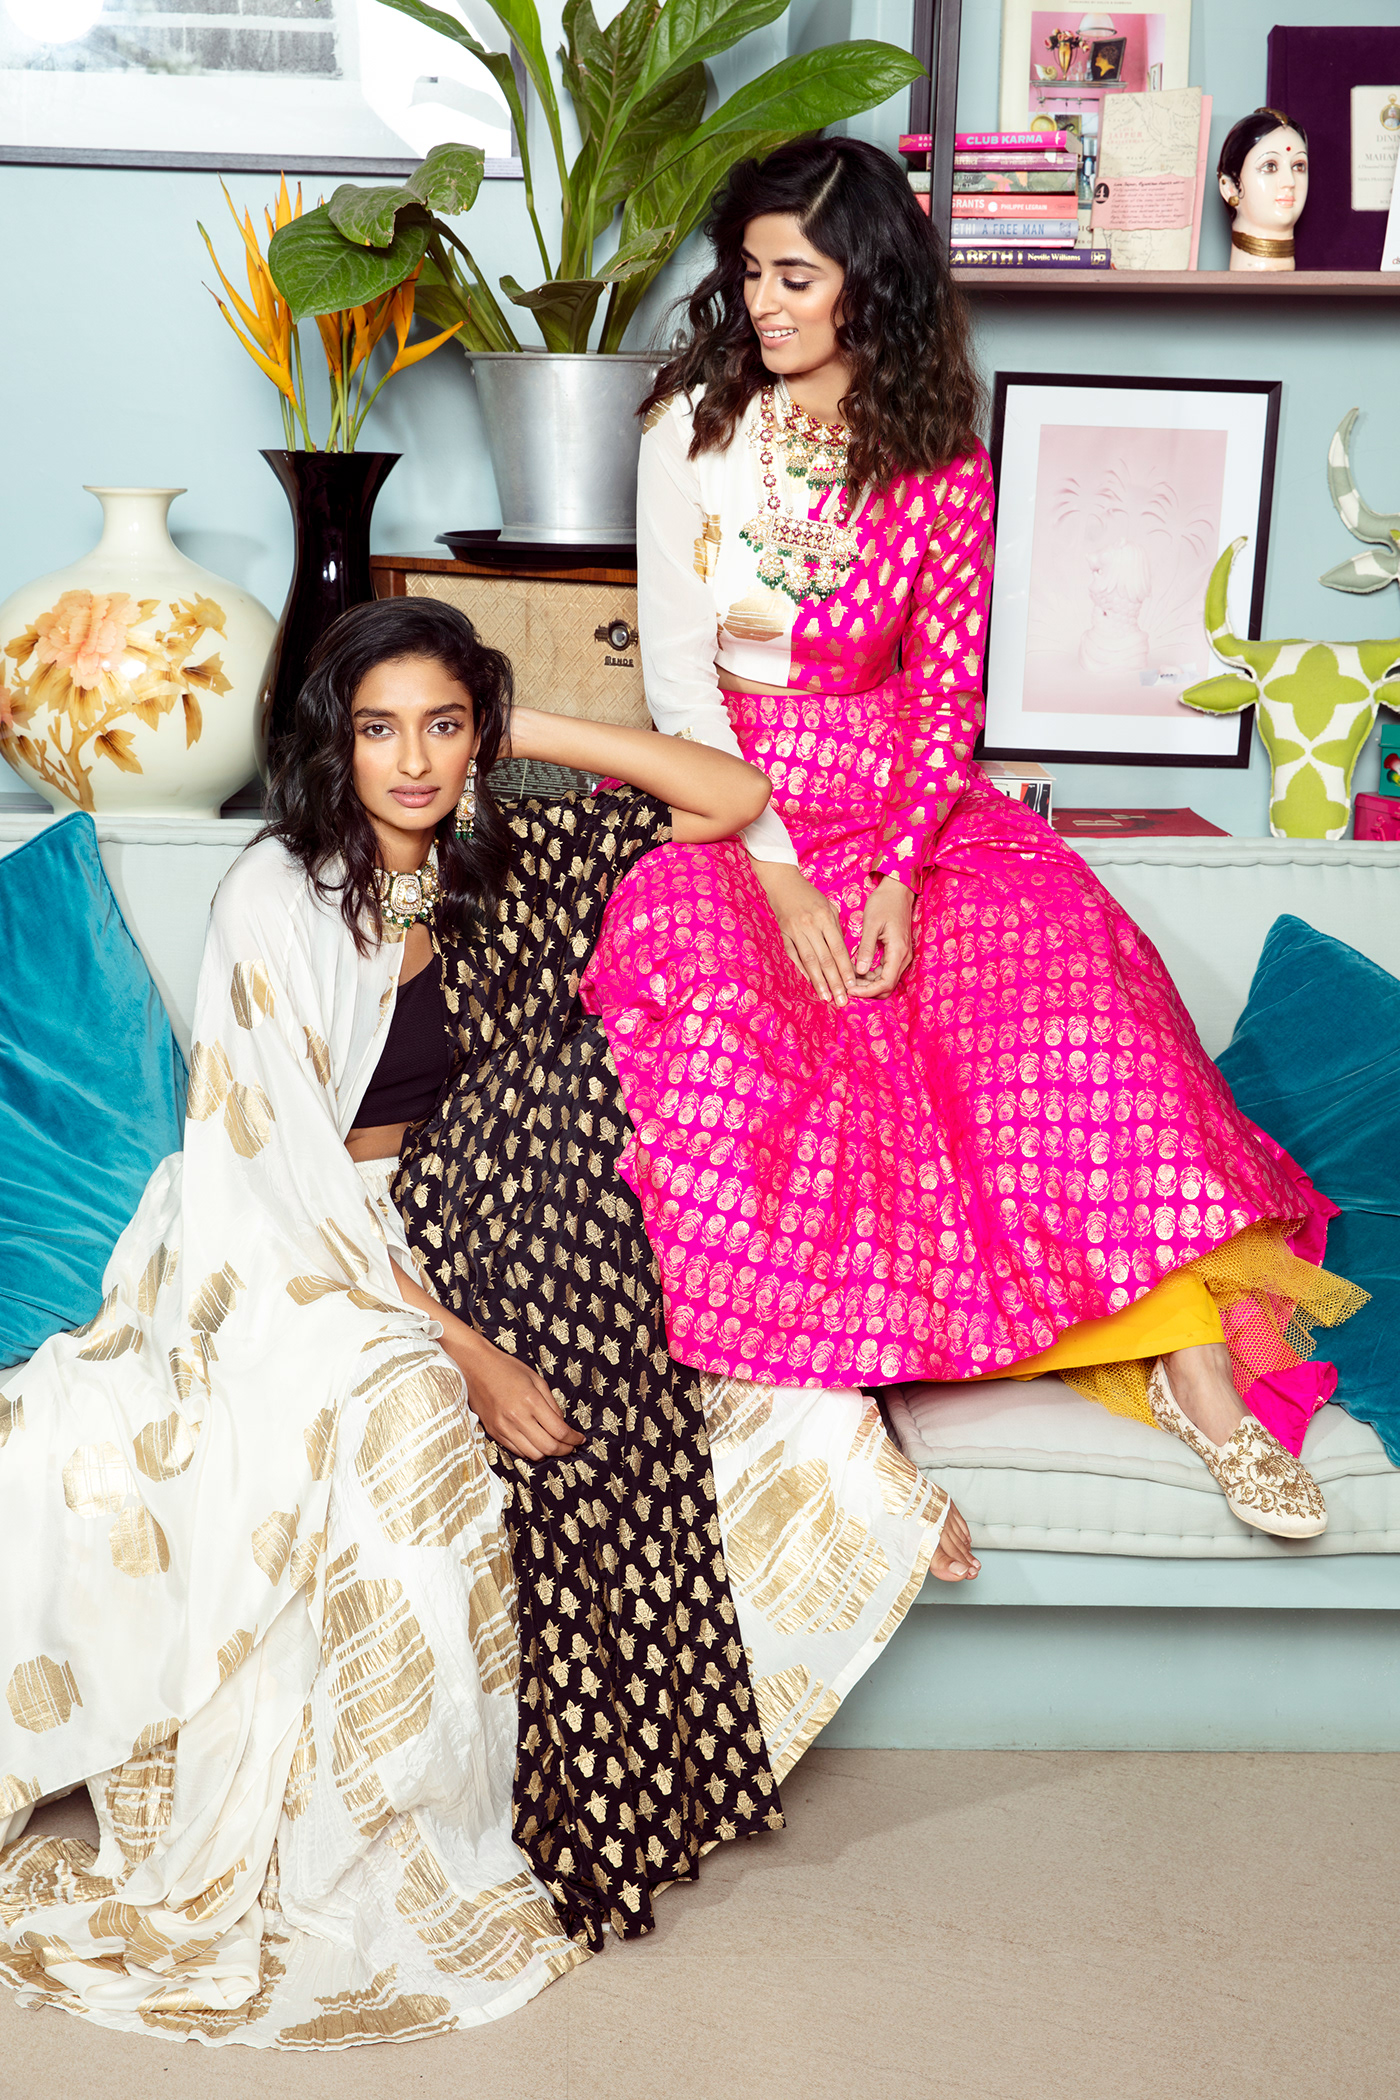 The Pernia's Pop Up show Campaign// фото Chandni Bajaj